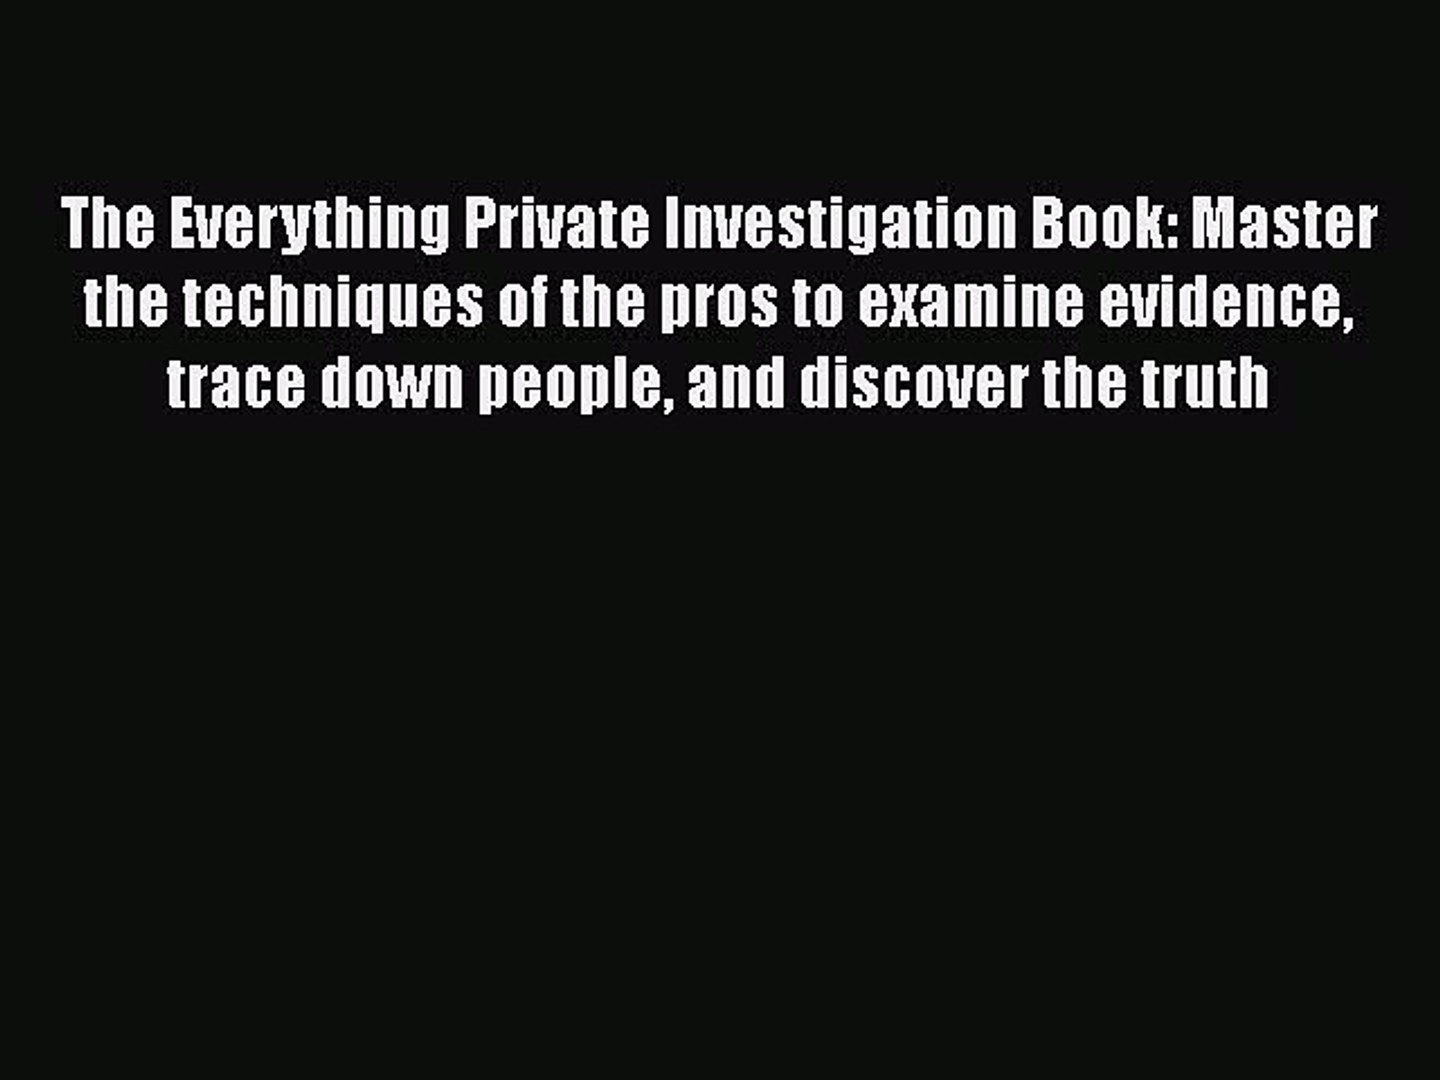 trace down people and discover the truth The Everything Private Investigation Book Master the techniques of the pros to examine evidence